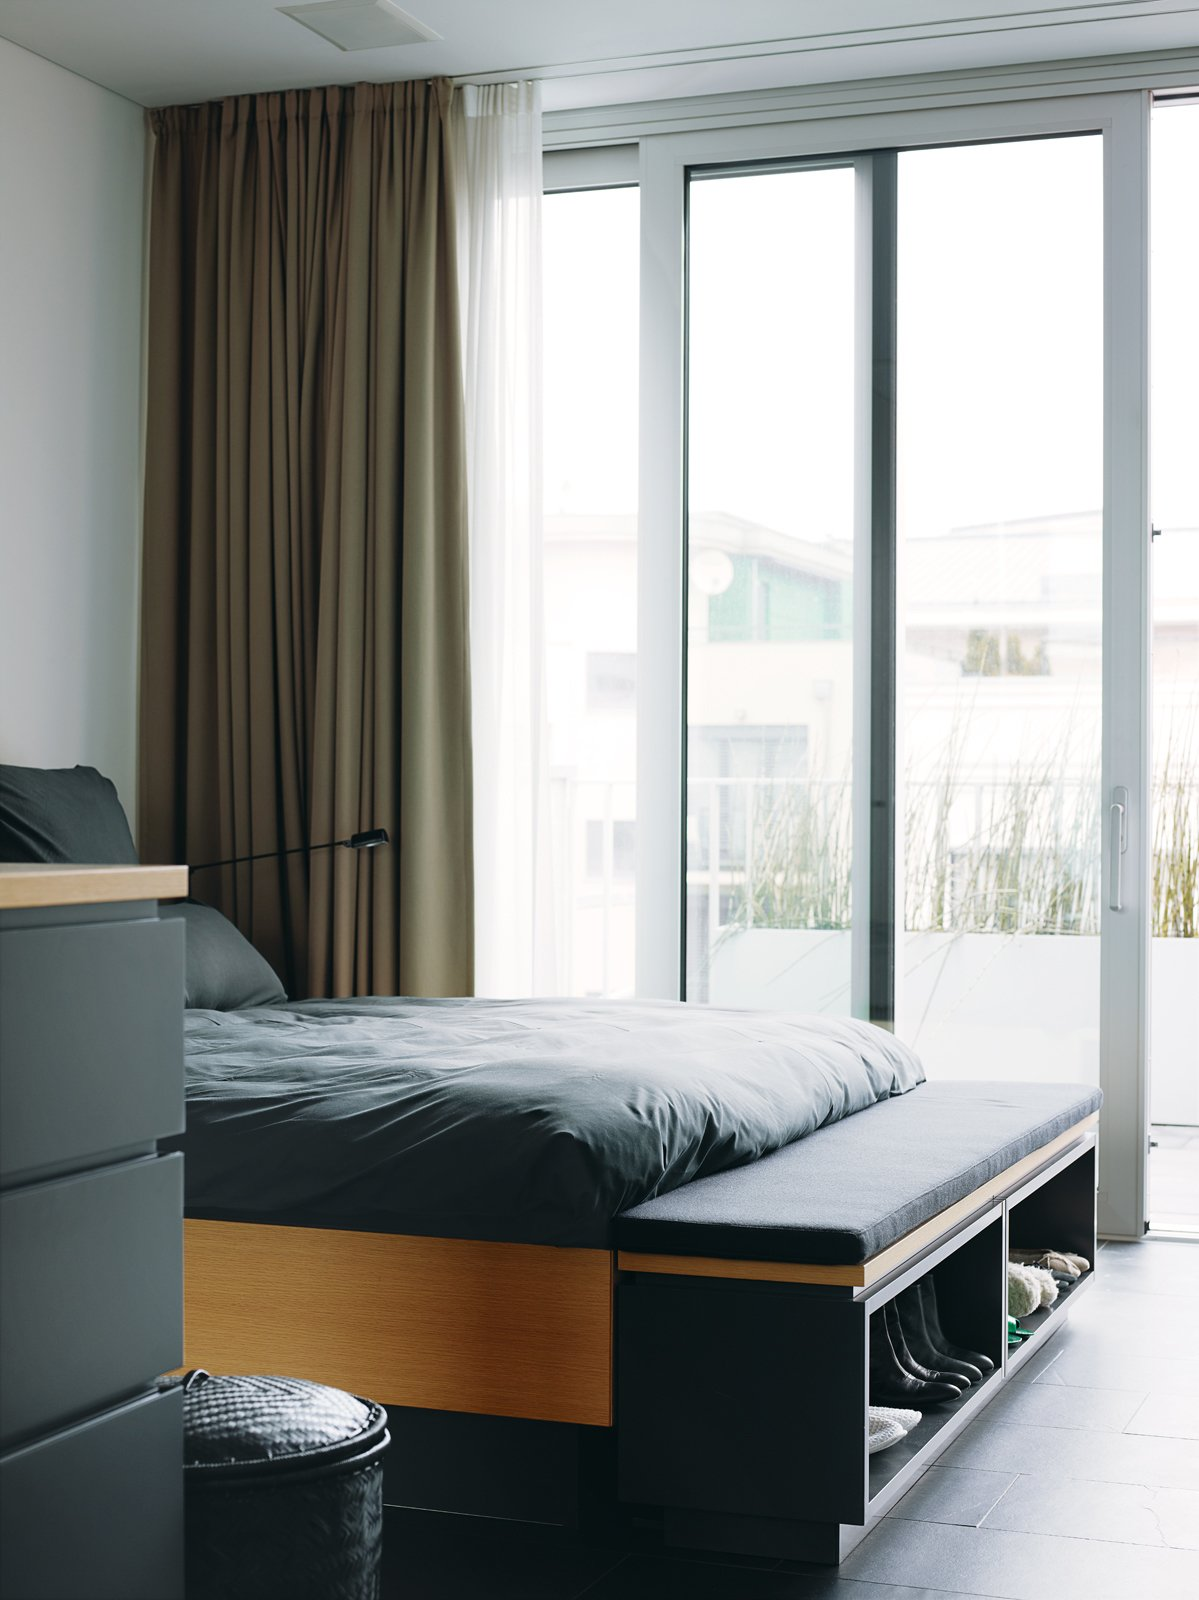 The interior is bright and charming, cool but not cold. Each floor is open, with an unencumbered view from the glass facade in front to the glass doors in back, which makes the rooms feel much larger than they are. Tagged: Bedroom and Bed.  Photo 15 of 16 in A Rational Approach